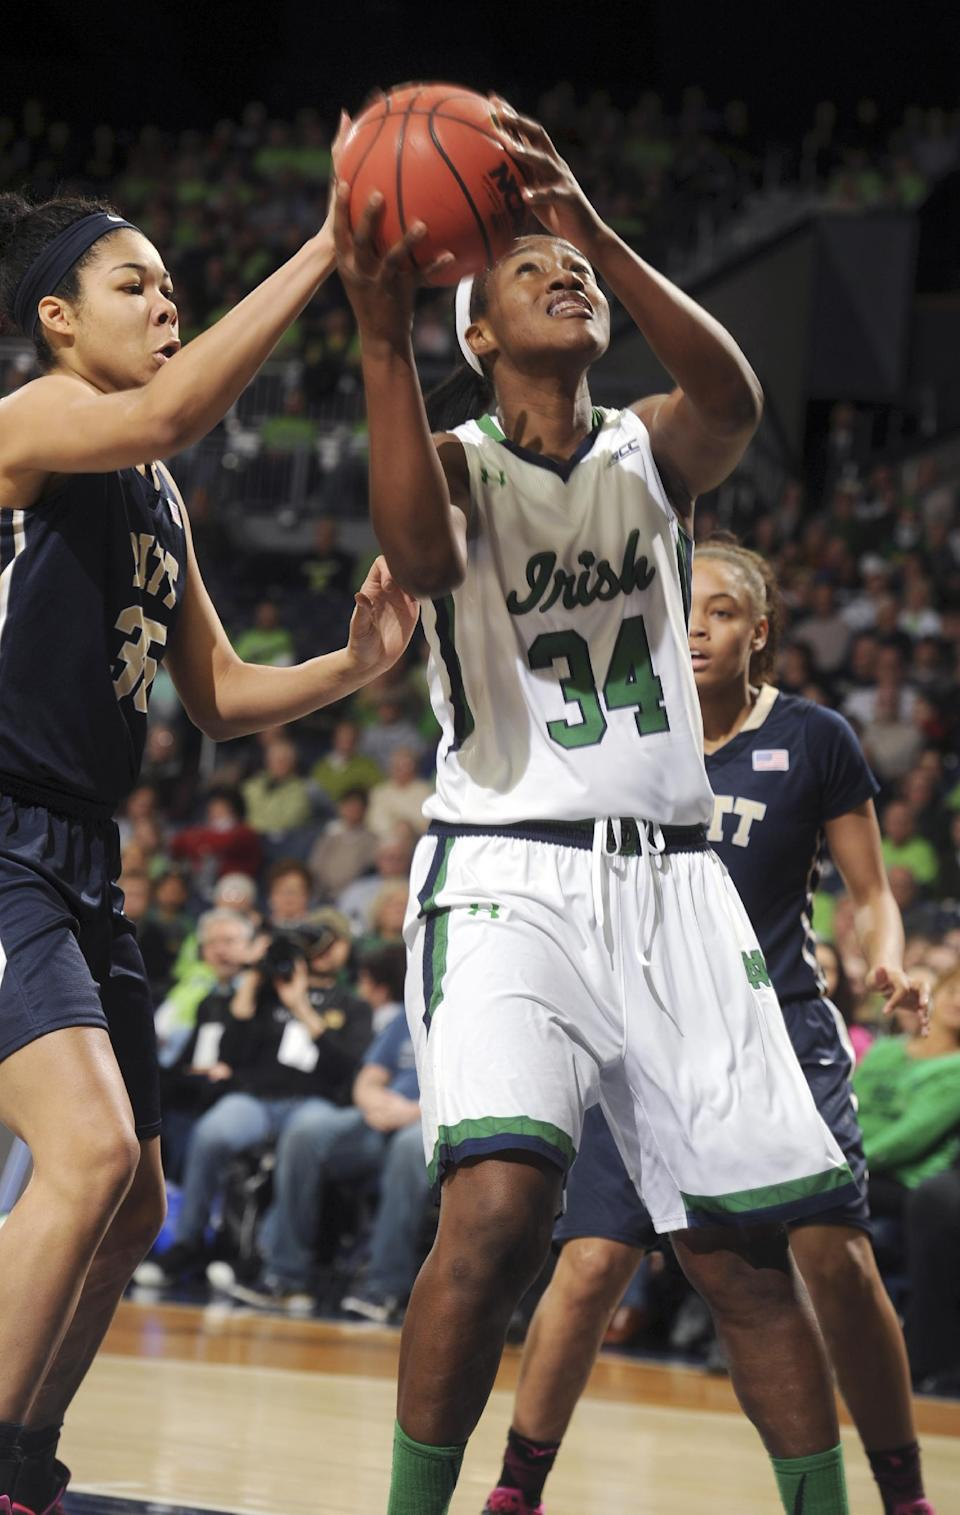 Notre Dame forward Mariska Wright (34) shoots in front of Pittsburgh forward Stasha Carey (35) during the first half of an NCAA college basketball game Thursday, Feb. 26, 2015, in South Bend, Ind. (AP Photo/Joe Raymond)